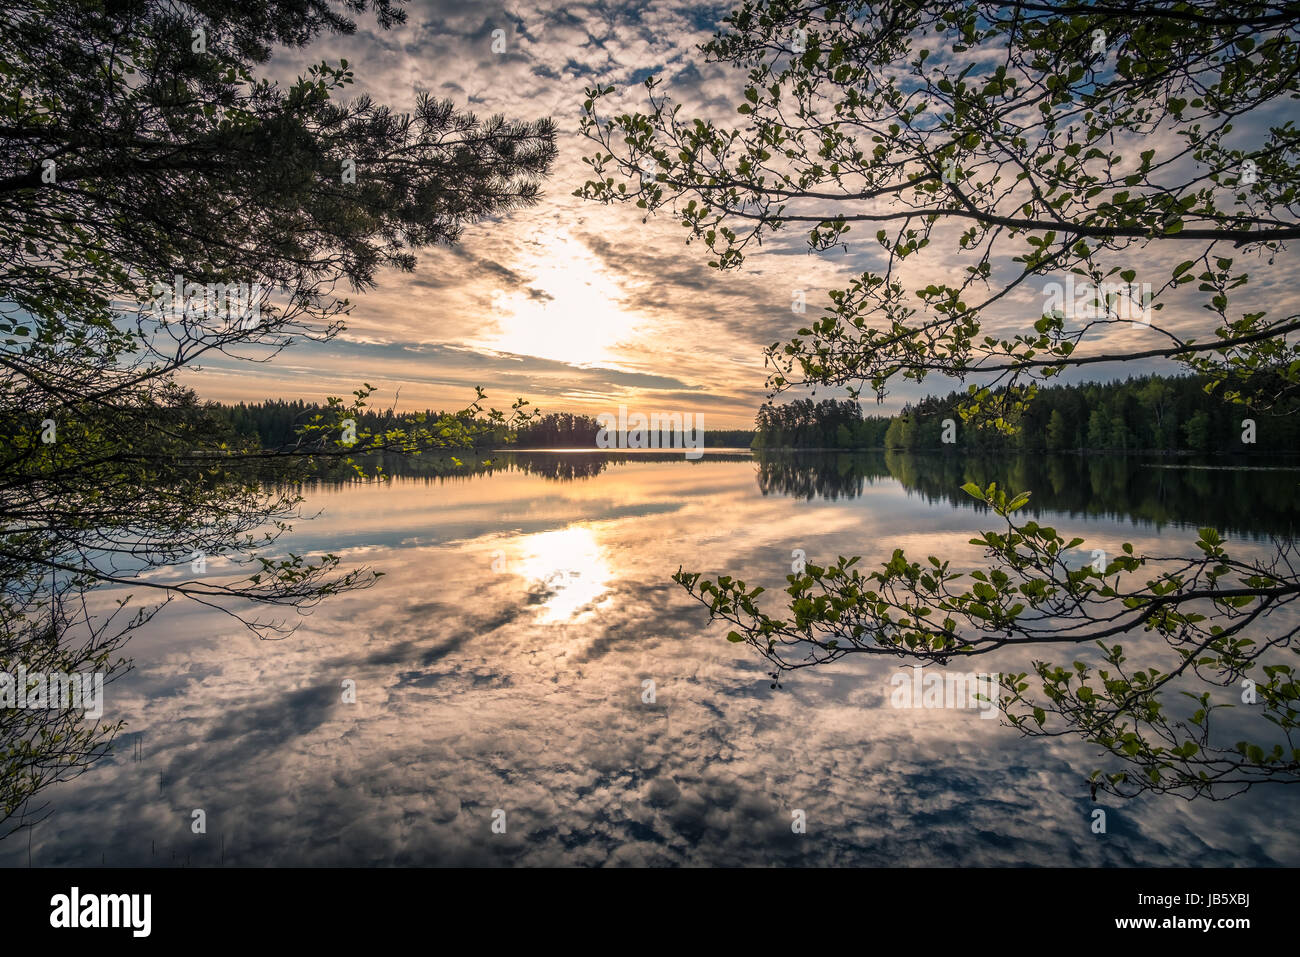 Scenic landscape with lake and sunrise at summer morning in national park Liesjärvi, Finland - Stock Image